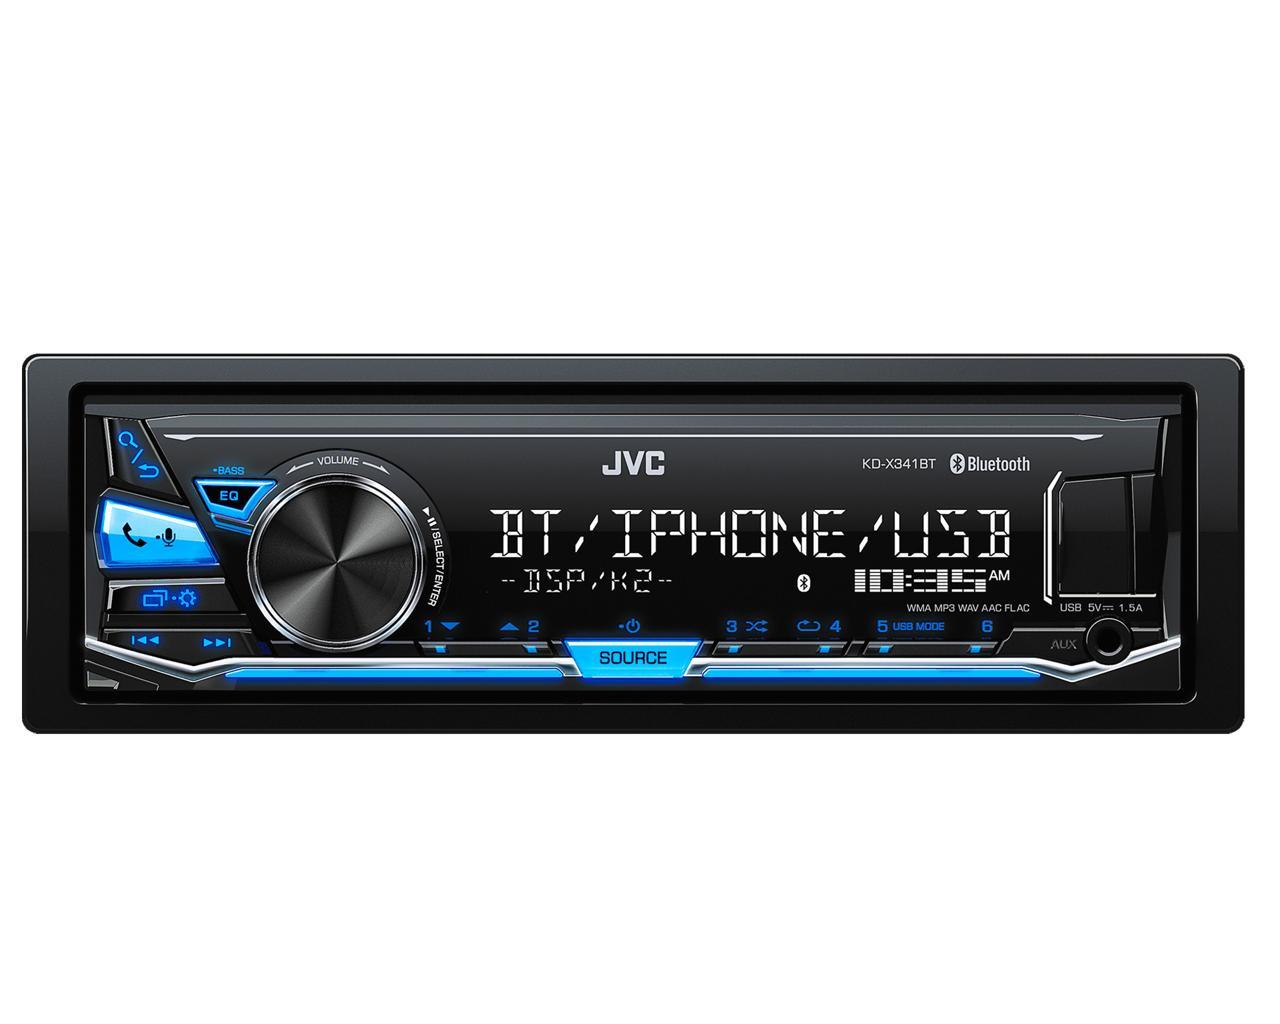 kd x341bt autoradio numerique usb aux bluetooth ipod iphone android bleu kd x351bt 455578. Black Bedroom Furniture Sets. Home Design Ideas